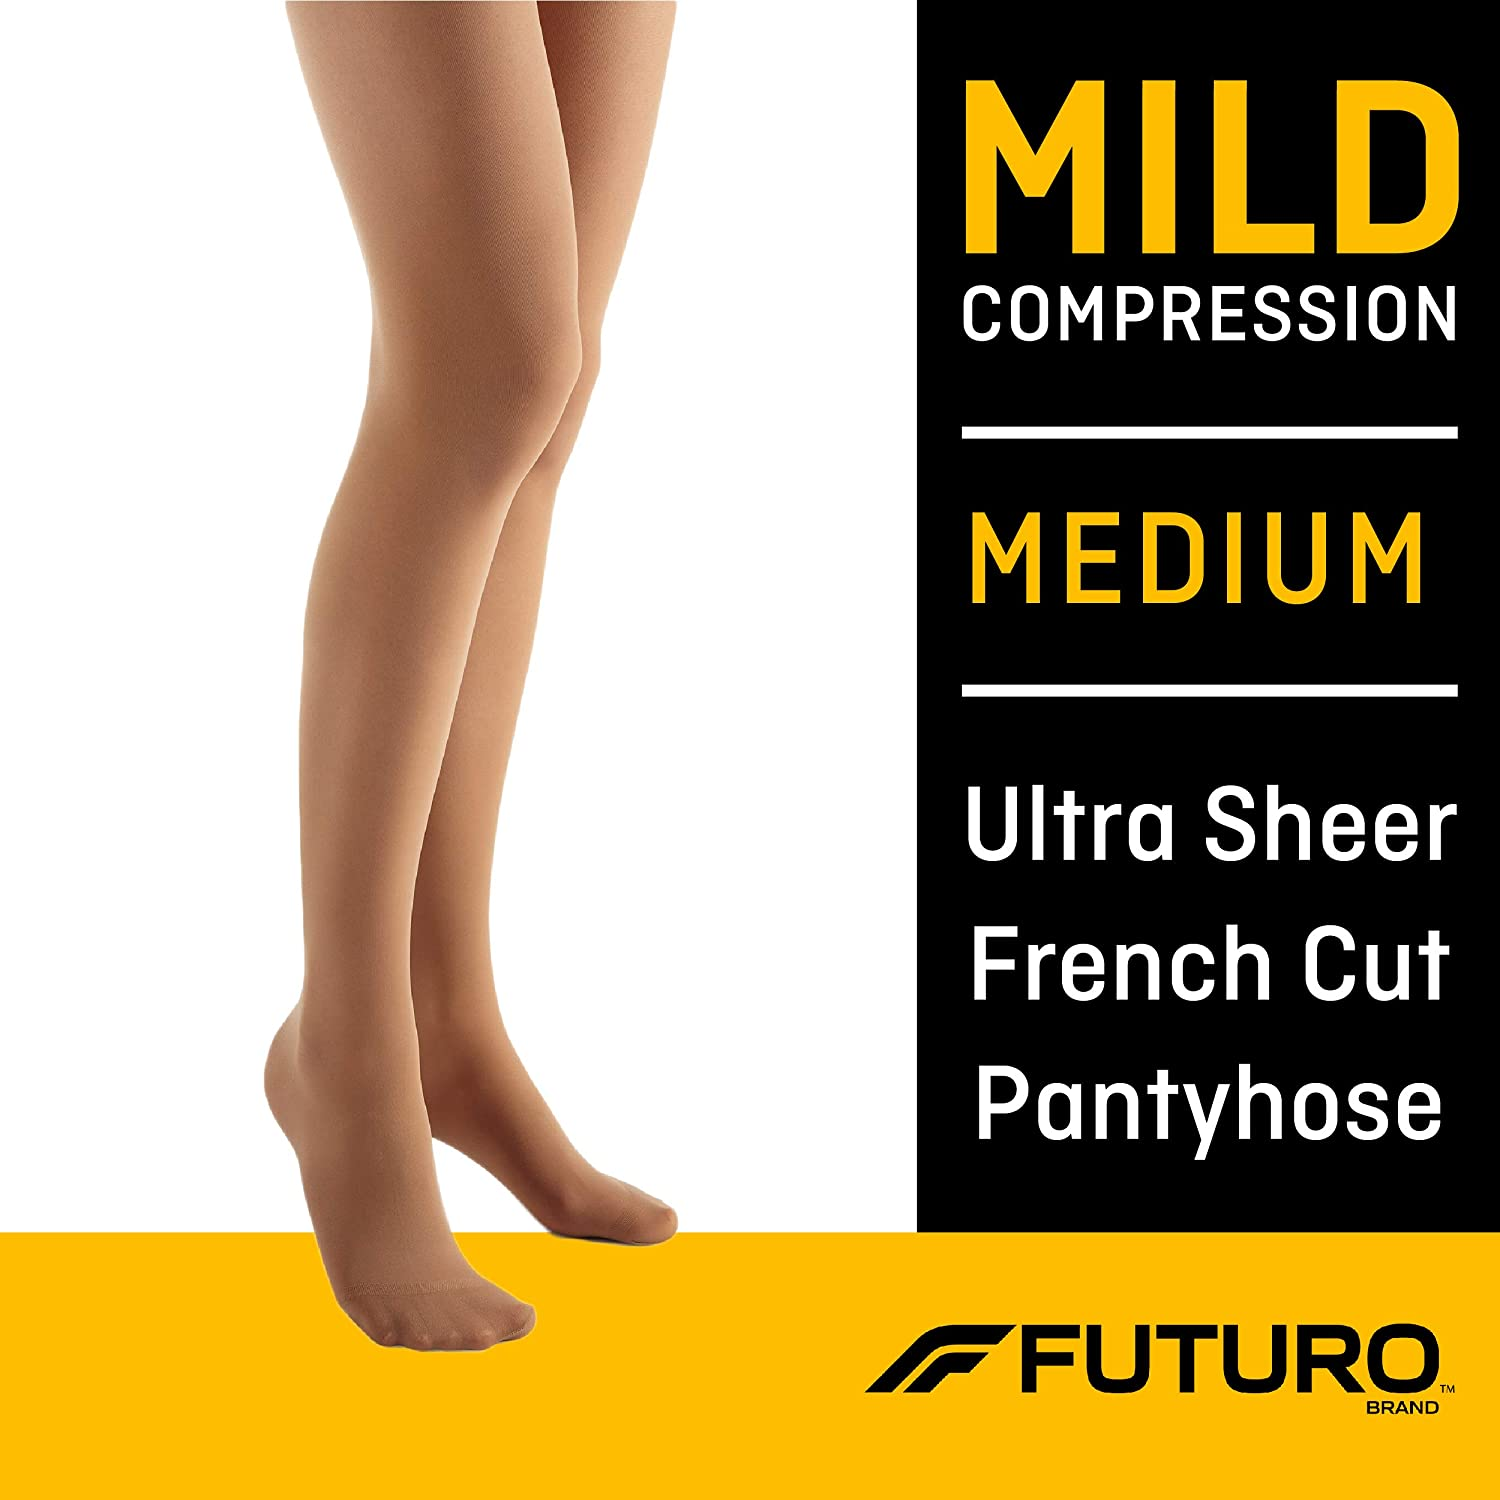 Futuro Pantyhose for Women, Mild Compression, Medium, Nude, Helps Improve Circulation to Help Minimize Swelling